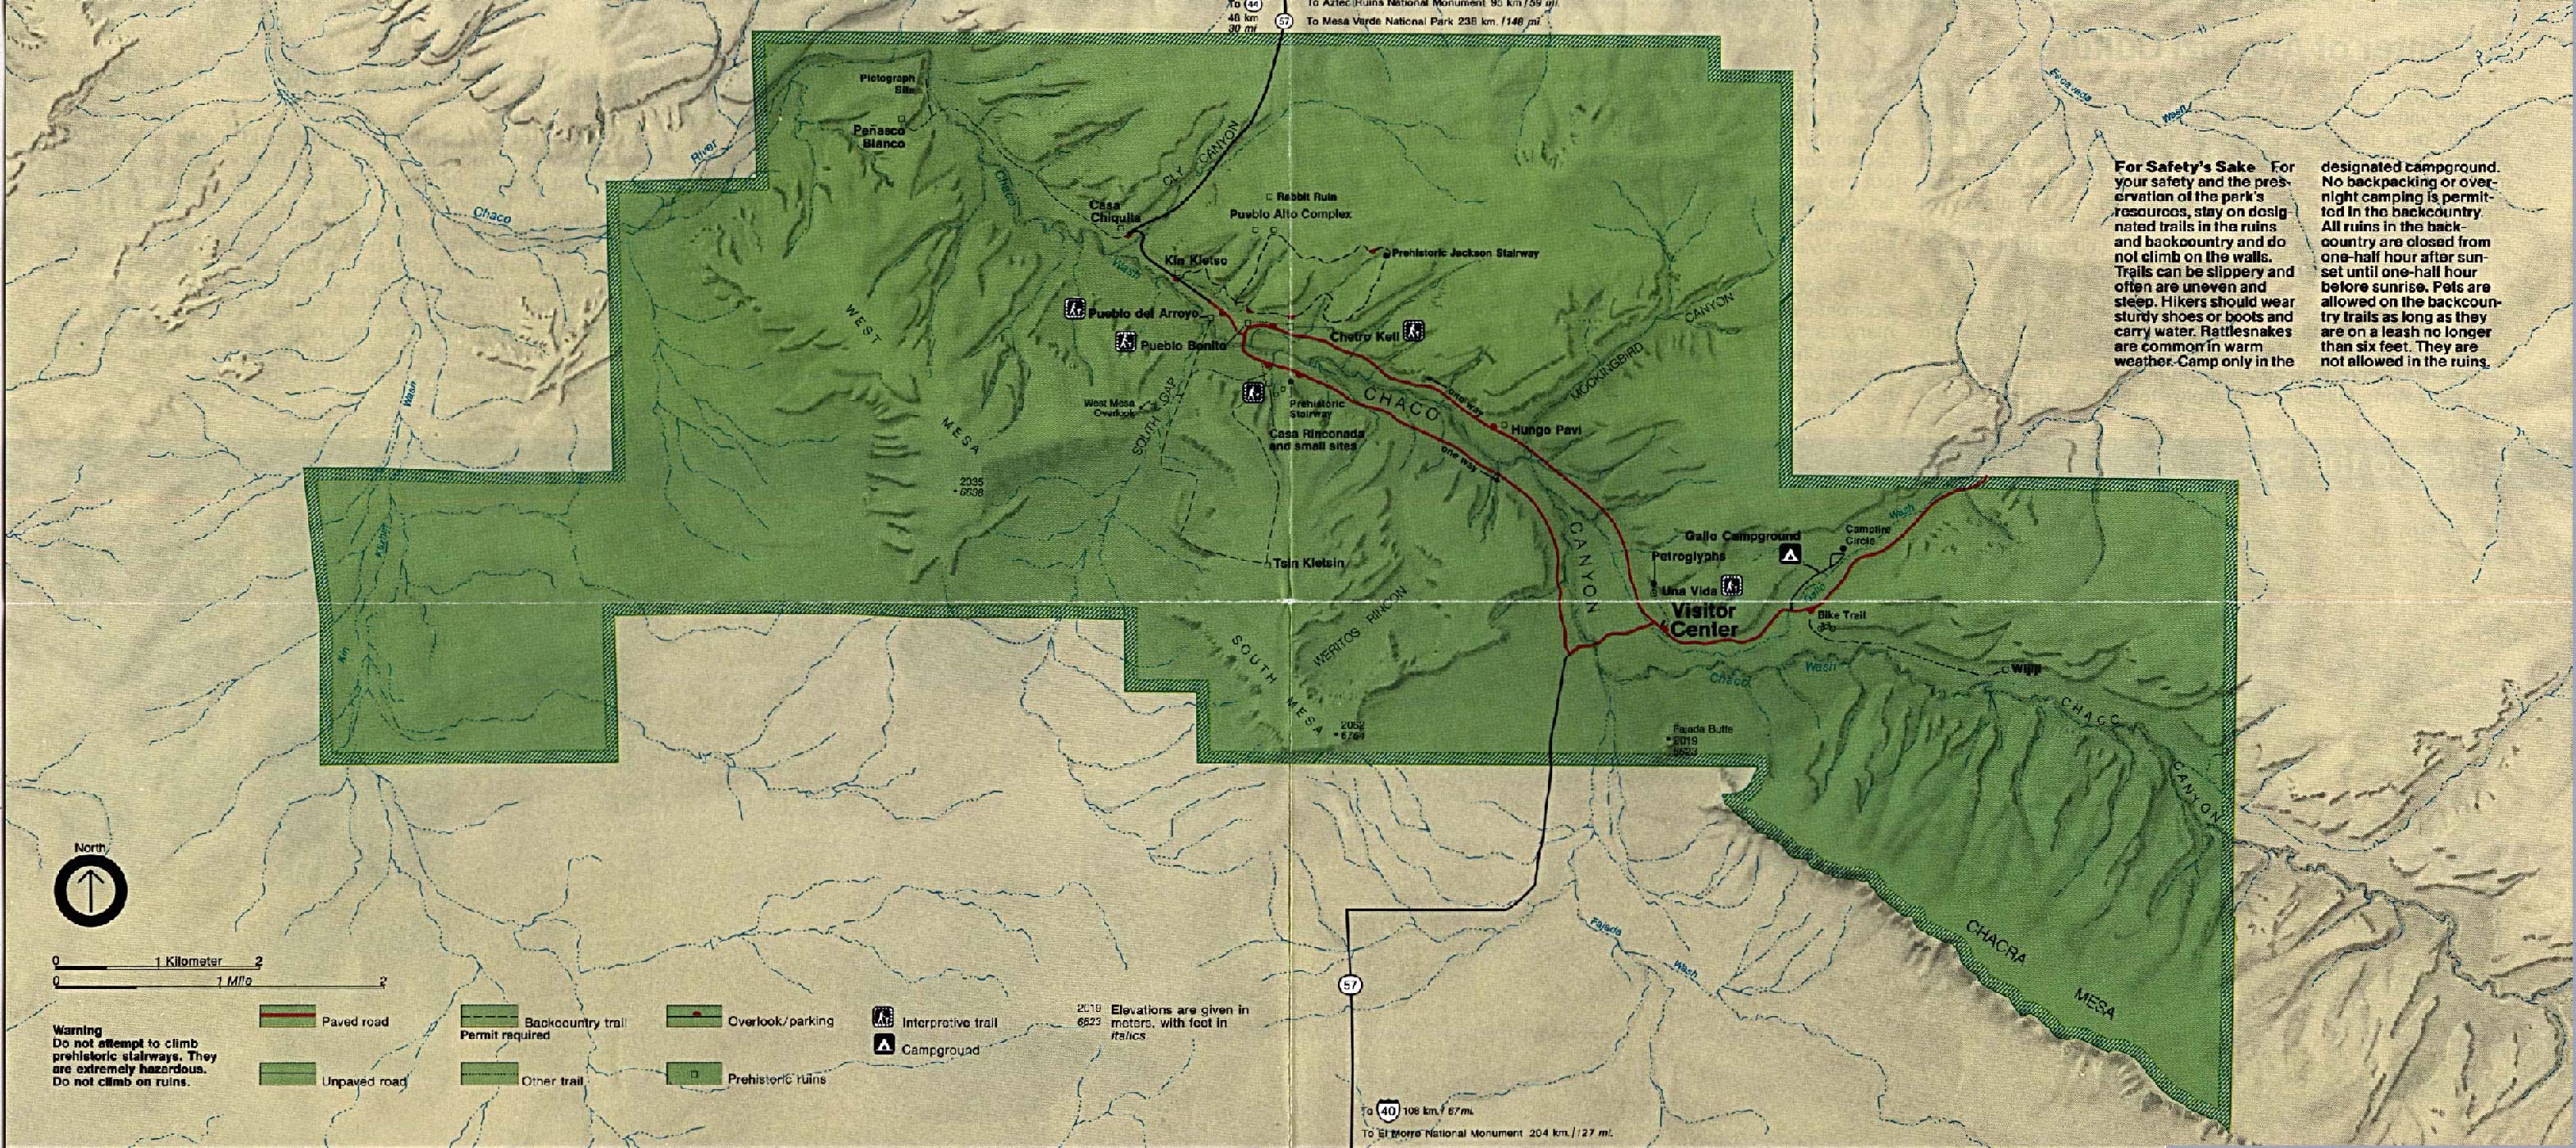 Chaco Culture National Historic Park Map, New Mexico, United States